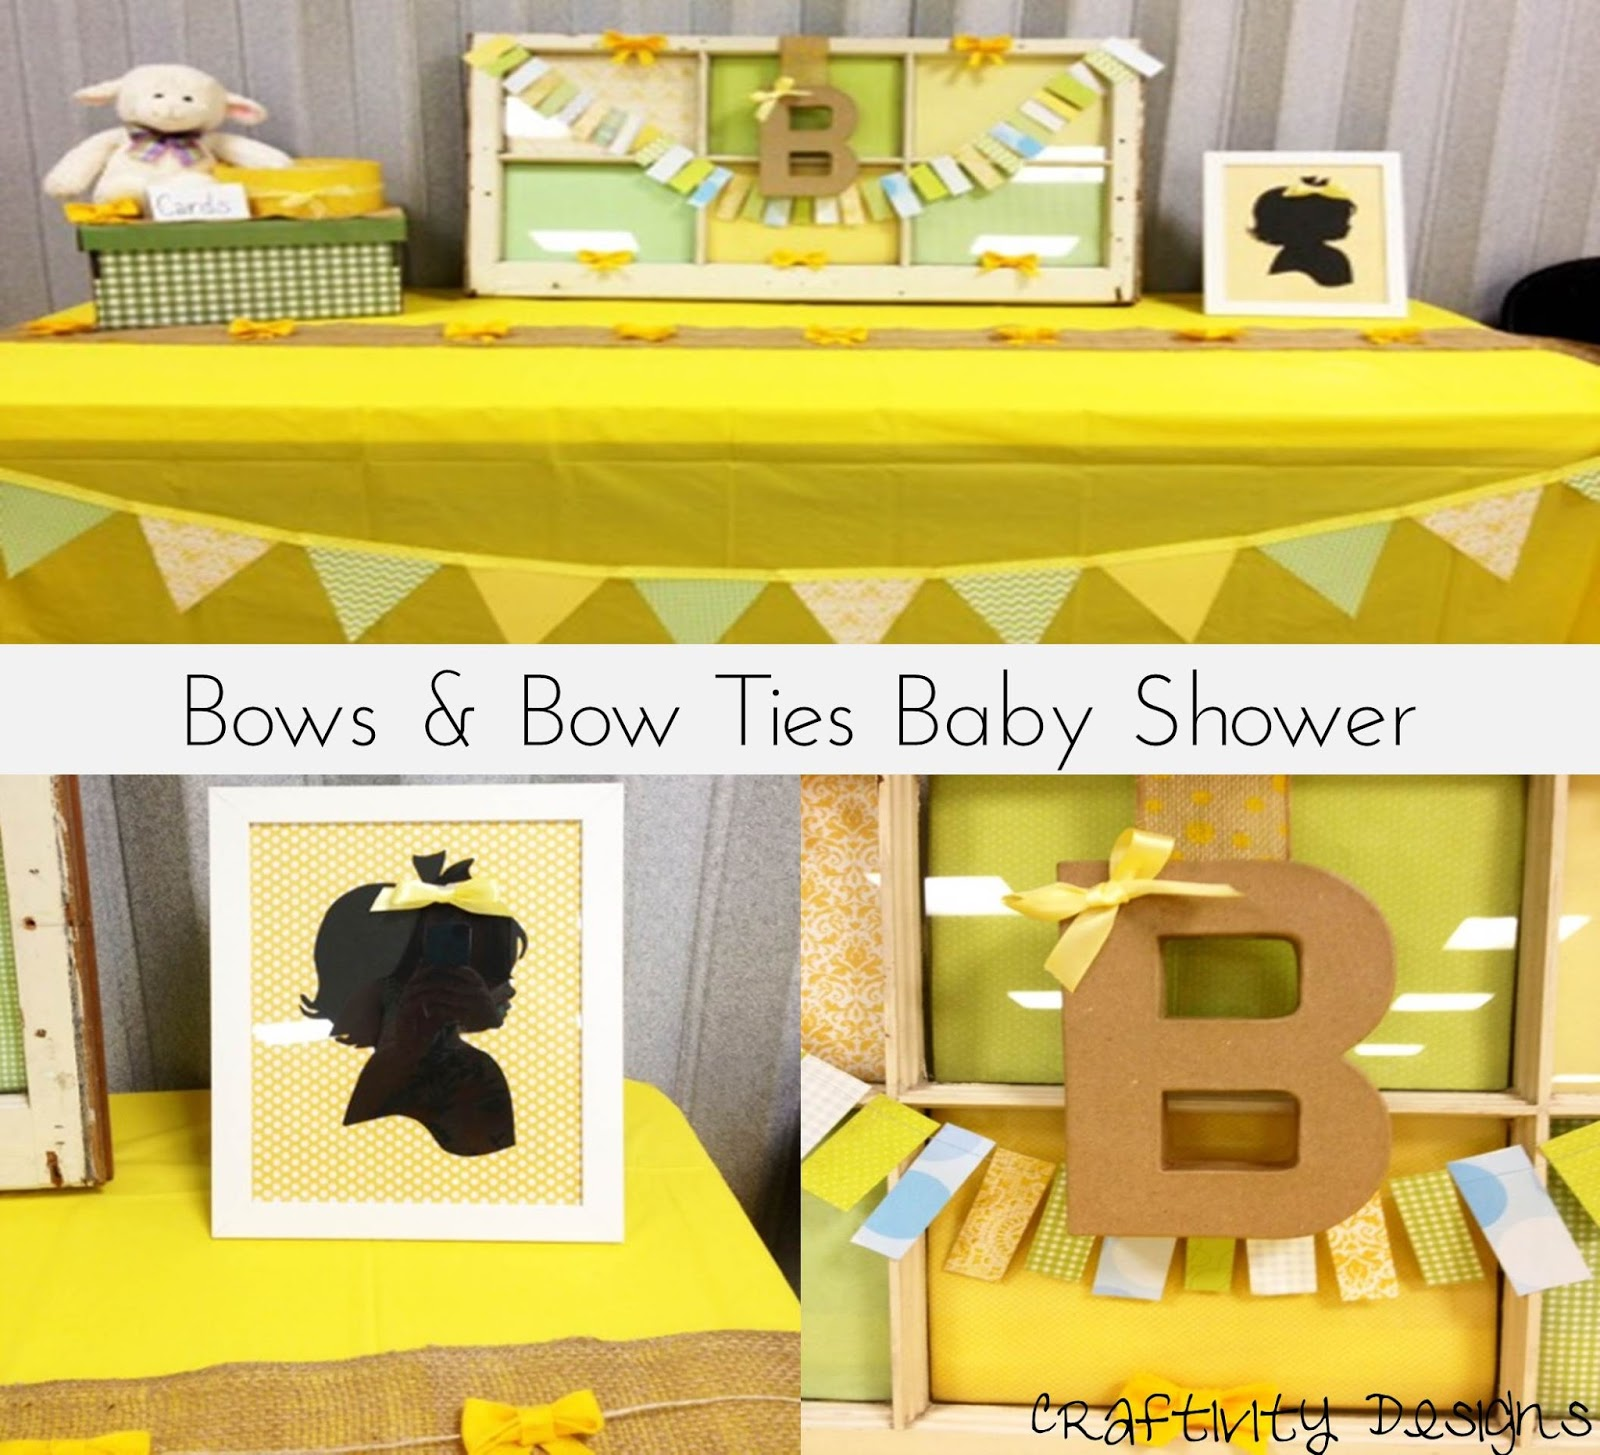 bows bow ties shower the decorations craftivity designs